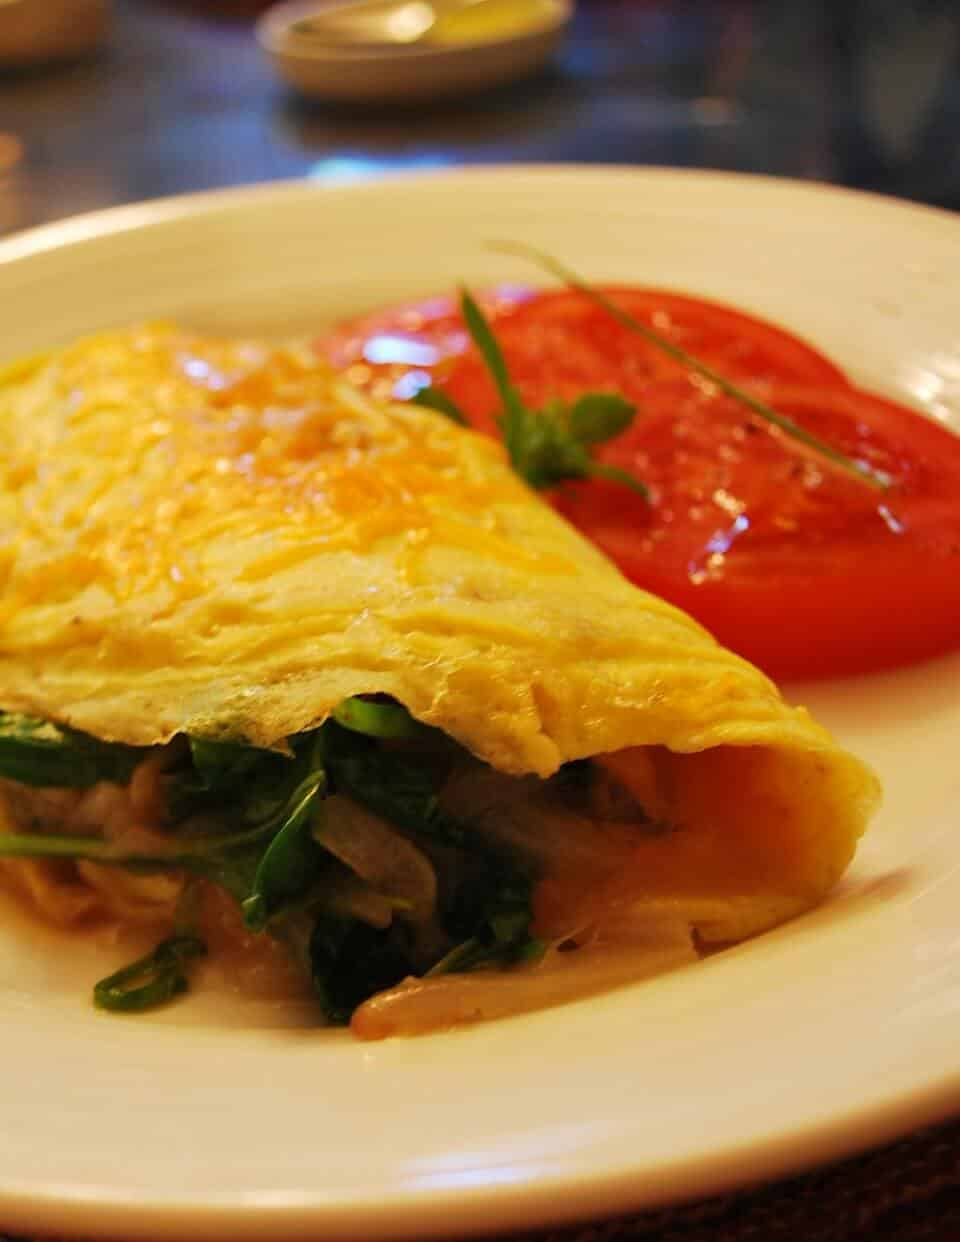 FRESH EGG OMELETTE WITH SWEET ONION MARMALADE & SPINACH